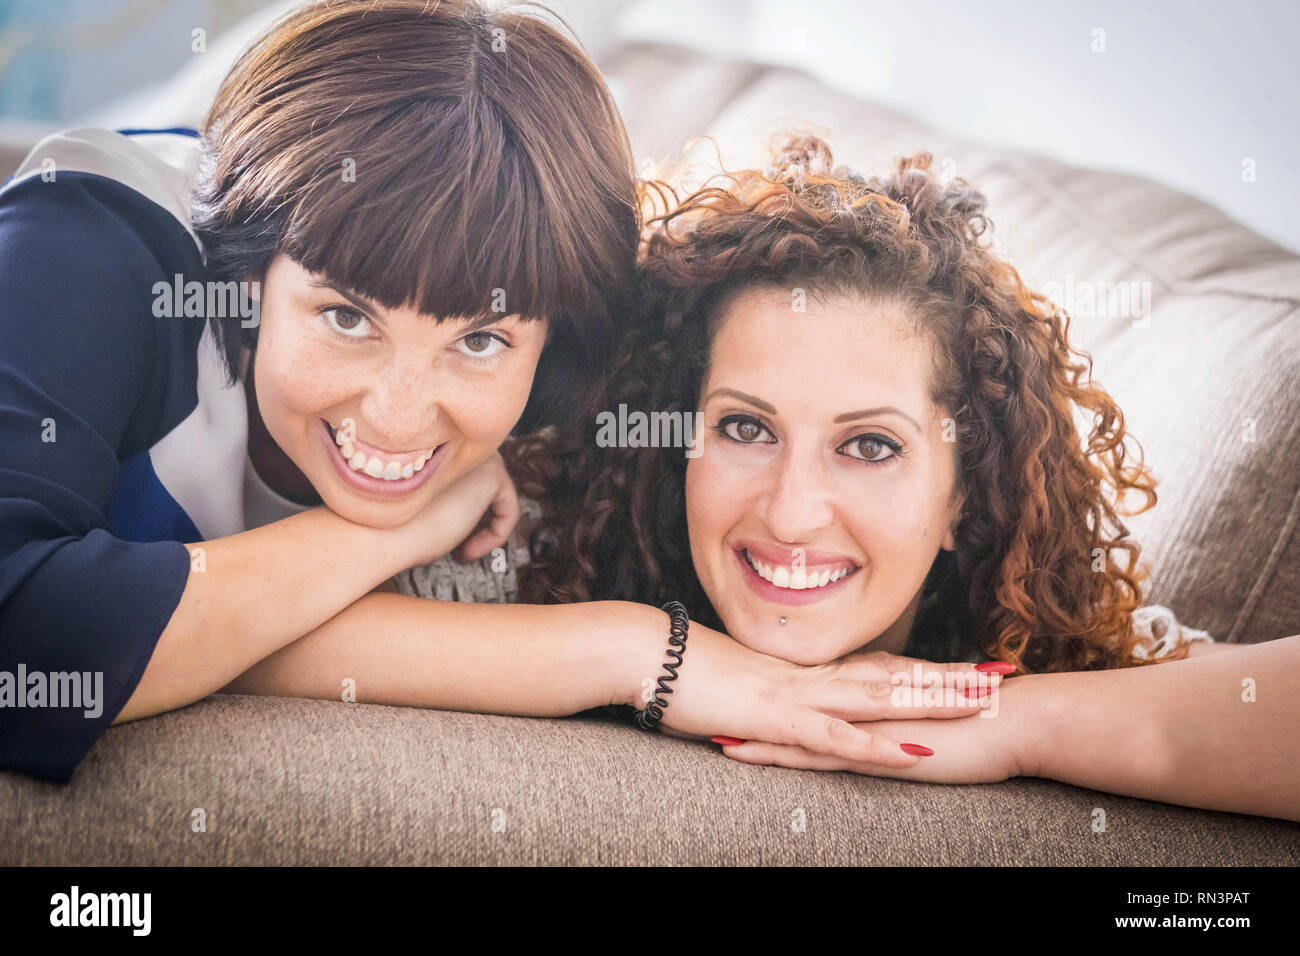 nice time and happiness with laugh and smiles for two caucasian female friends lay down together on the sofa at home. friendship concept for indoor pi - Stock Image